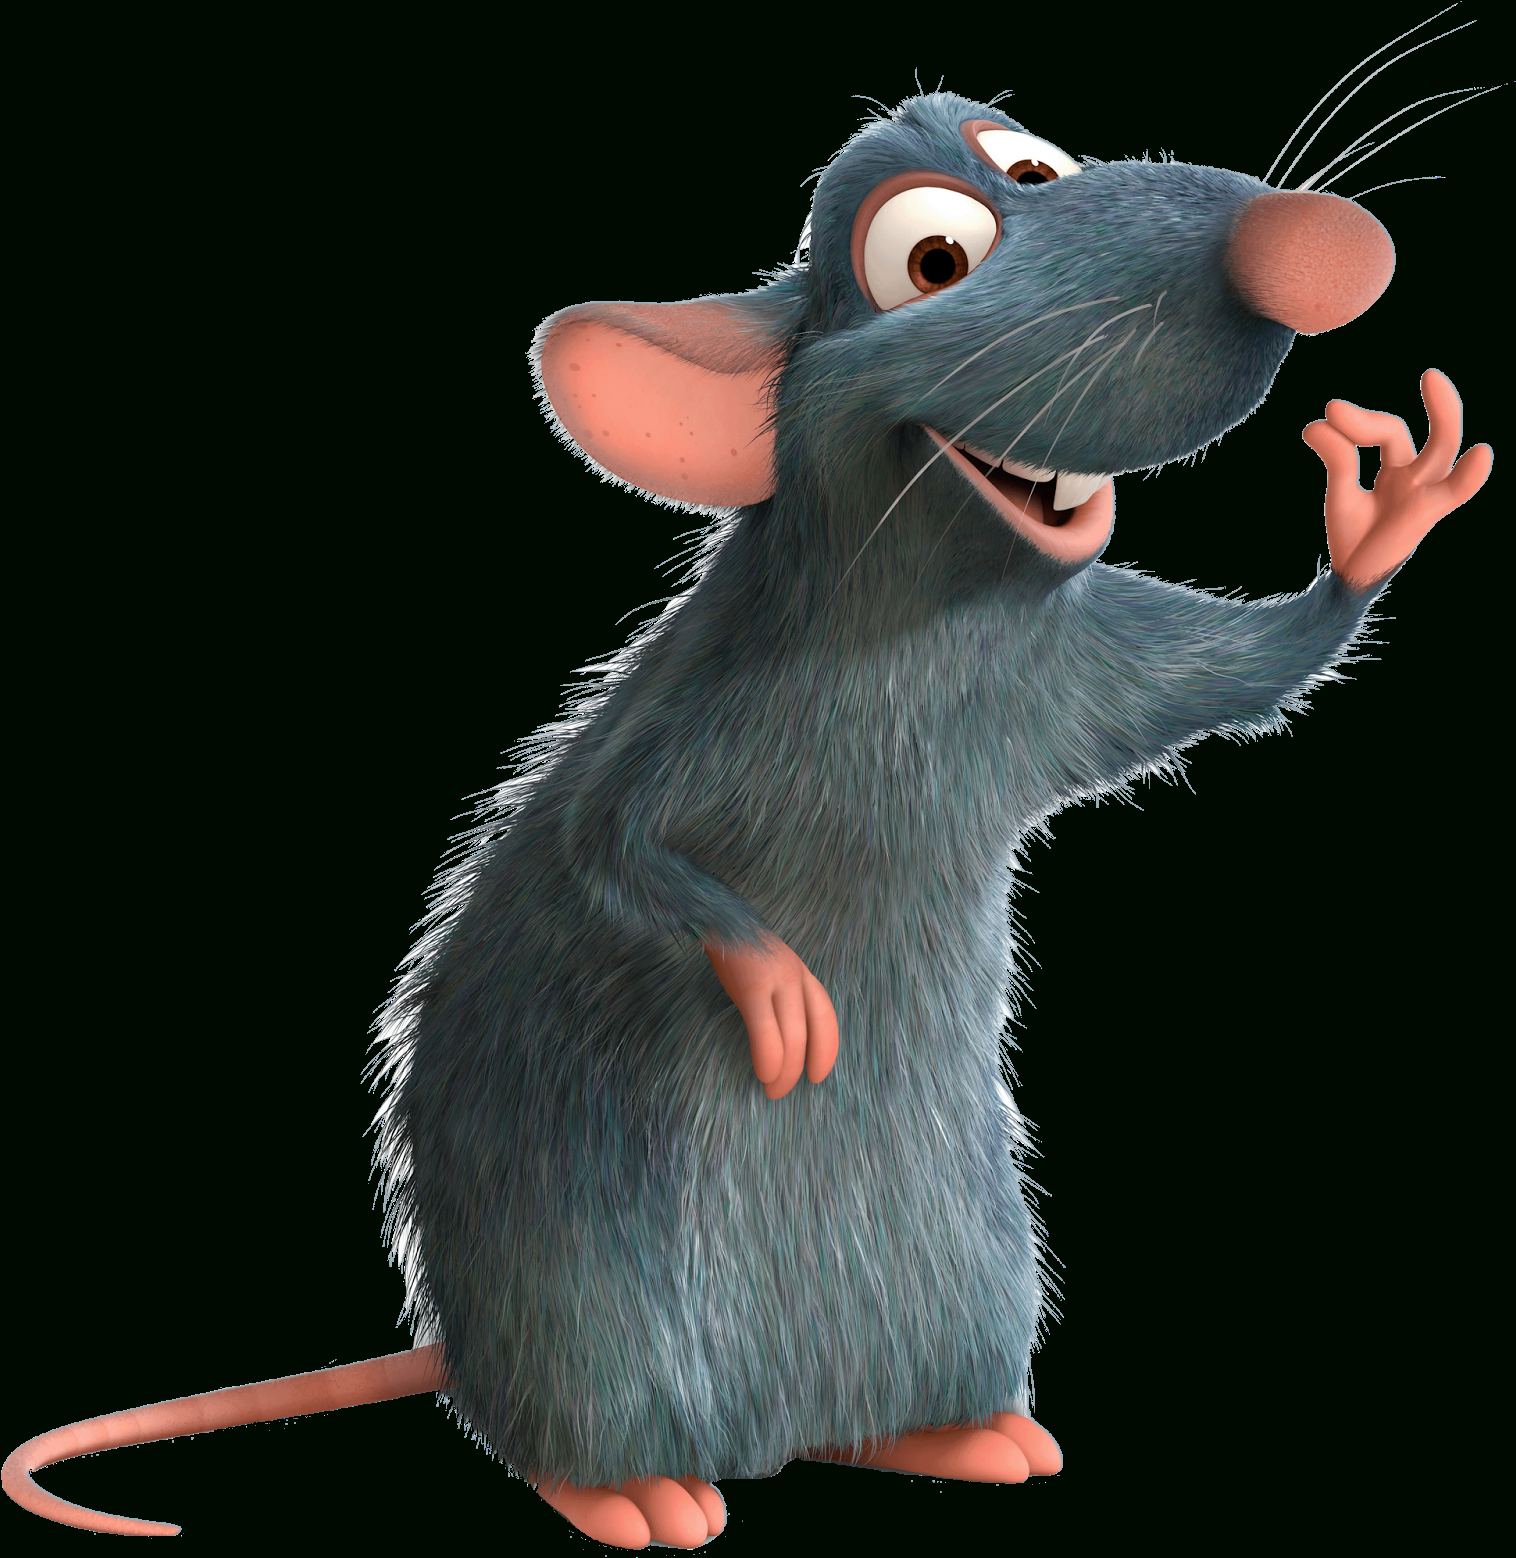 Hollywood Film Pixar The Walt Company Rat - Rauille dedans Dessin Ratatouille